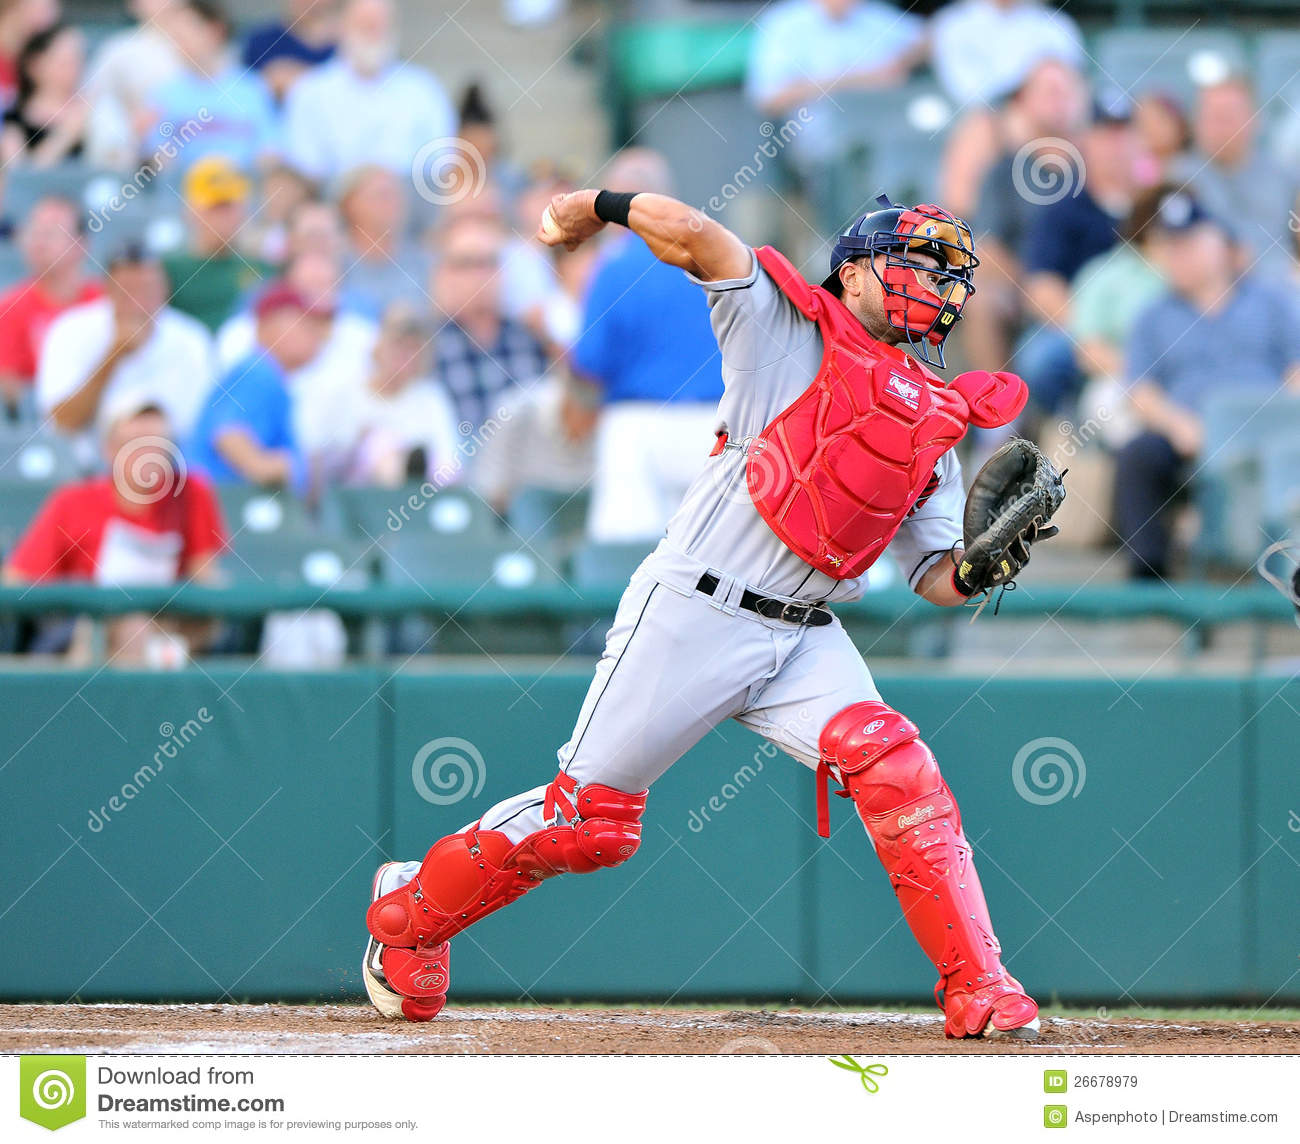 Baseball catcher throwing to second base dating. cat 2014 coaching in bangalore dating.